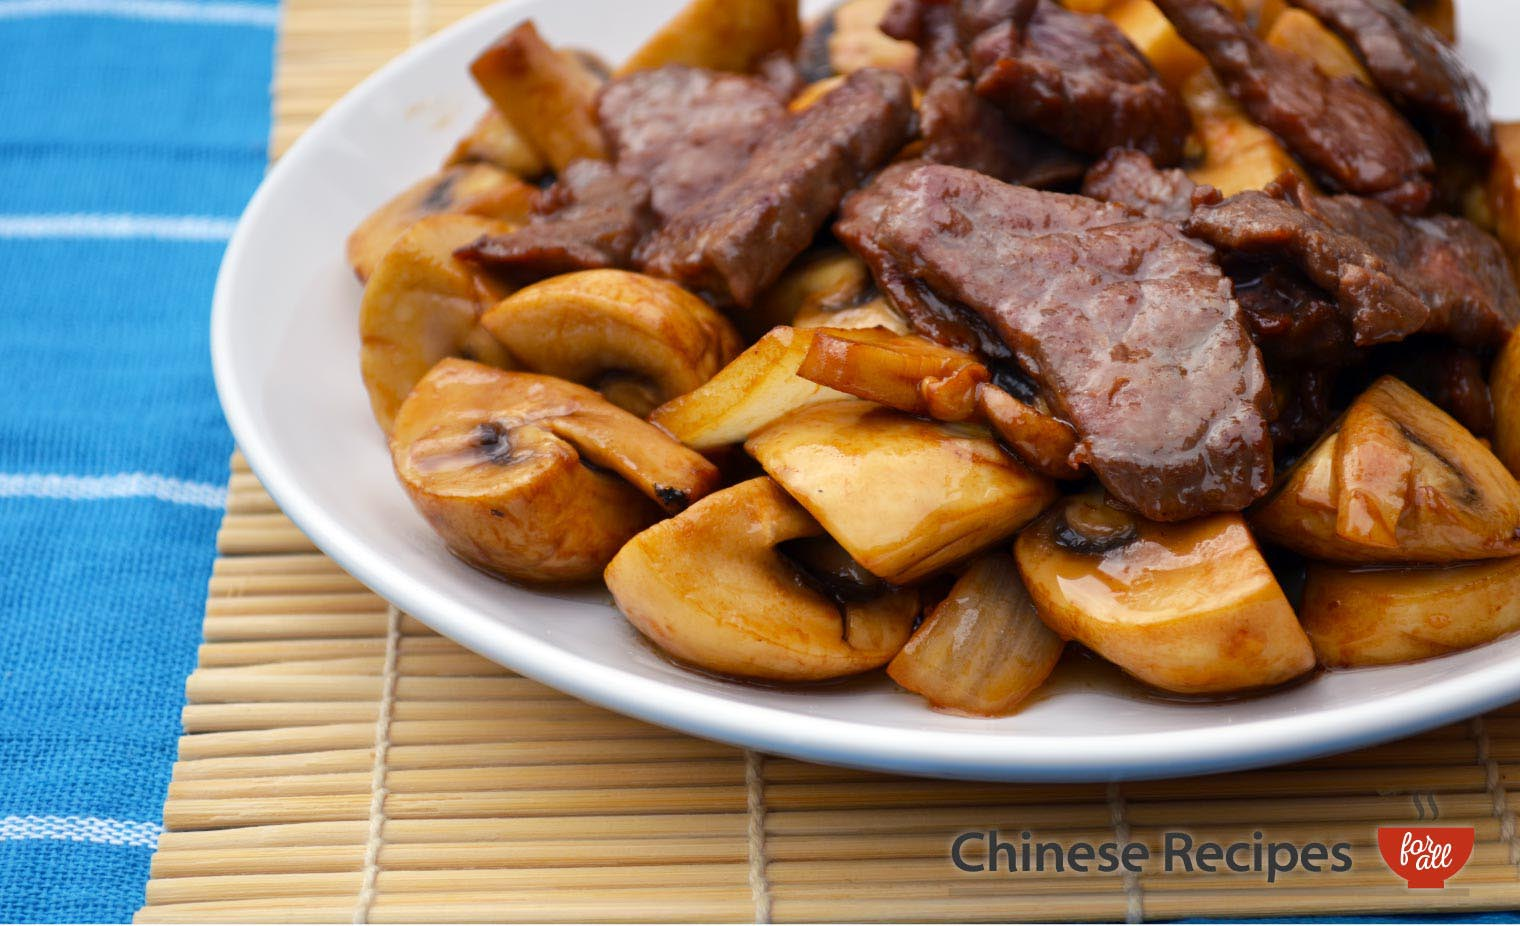 And mushrooms chinese recipes for all beef and mushrooms chinese recipes for all forumfinder Choice Image